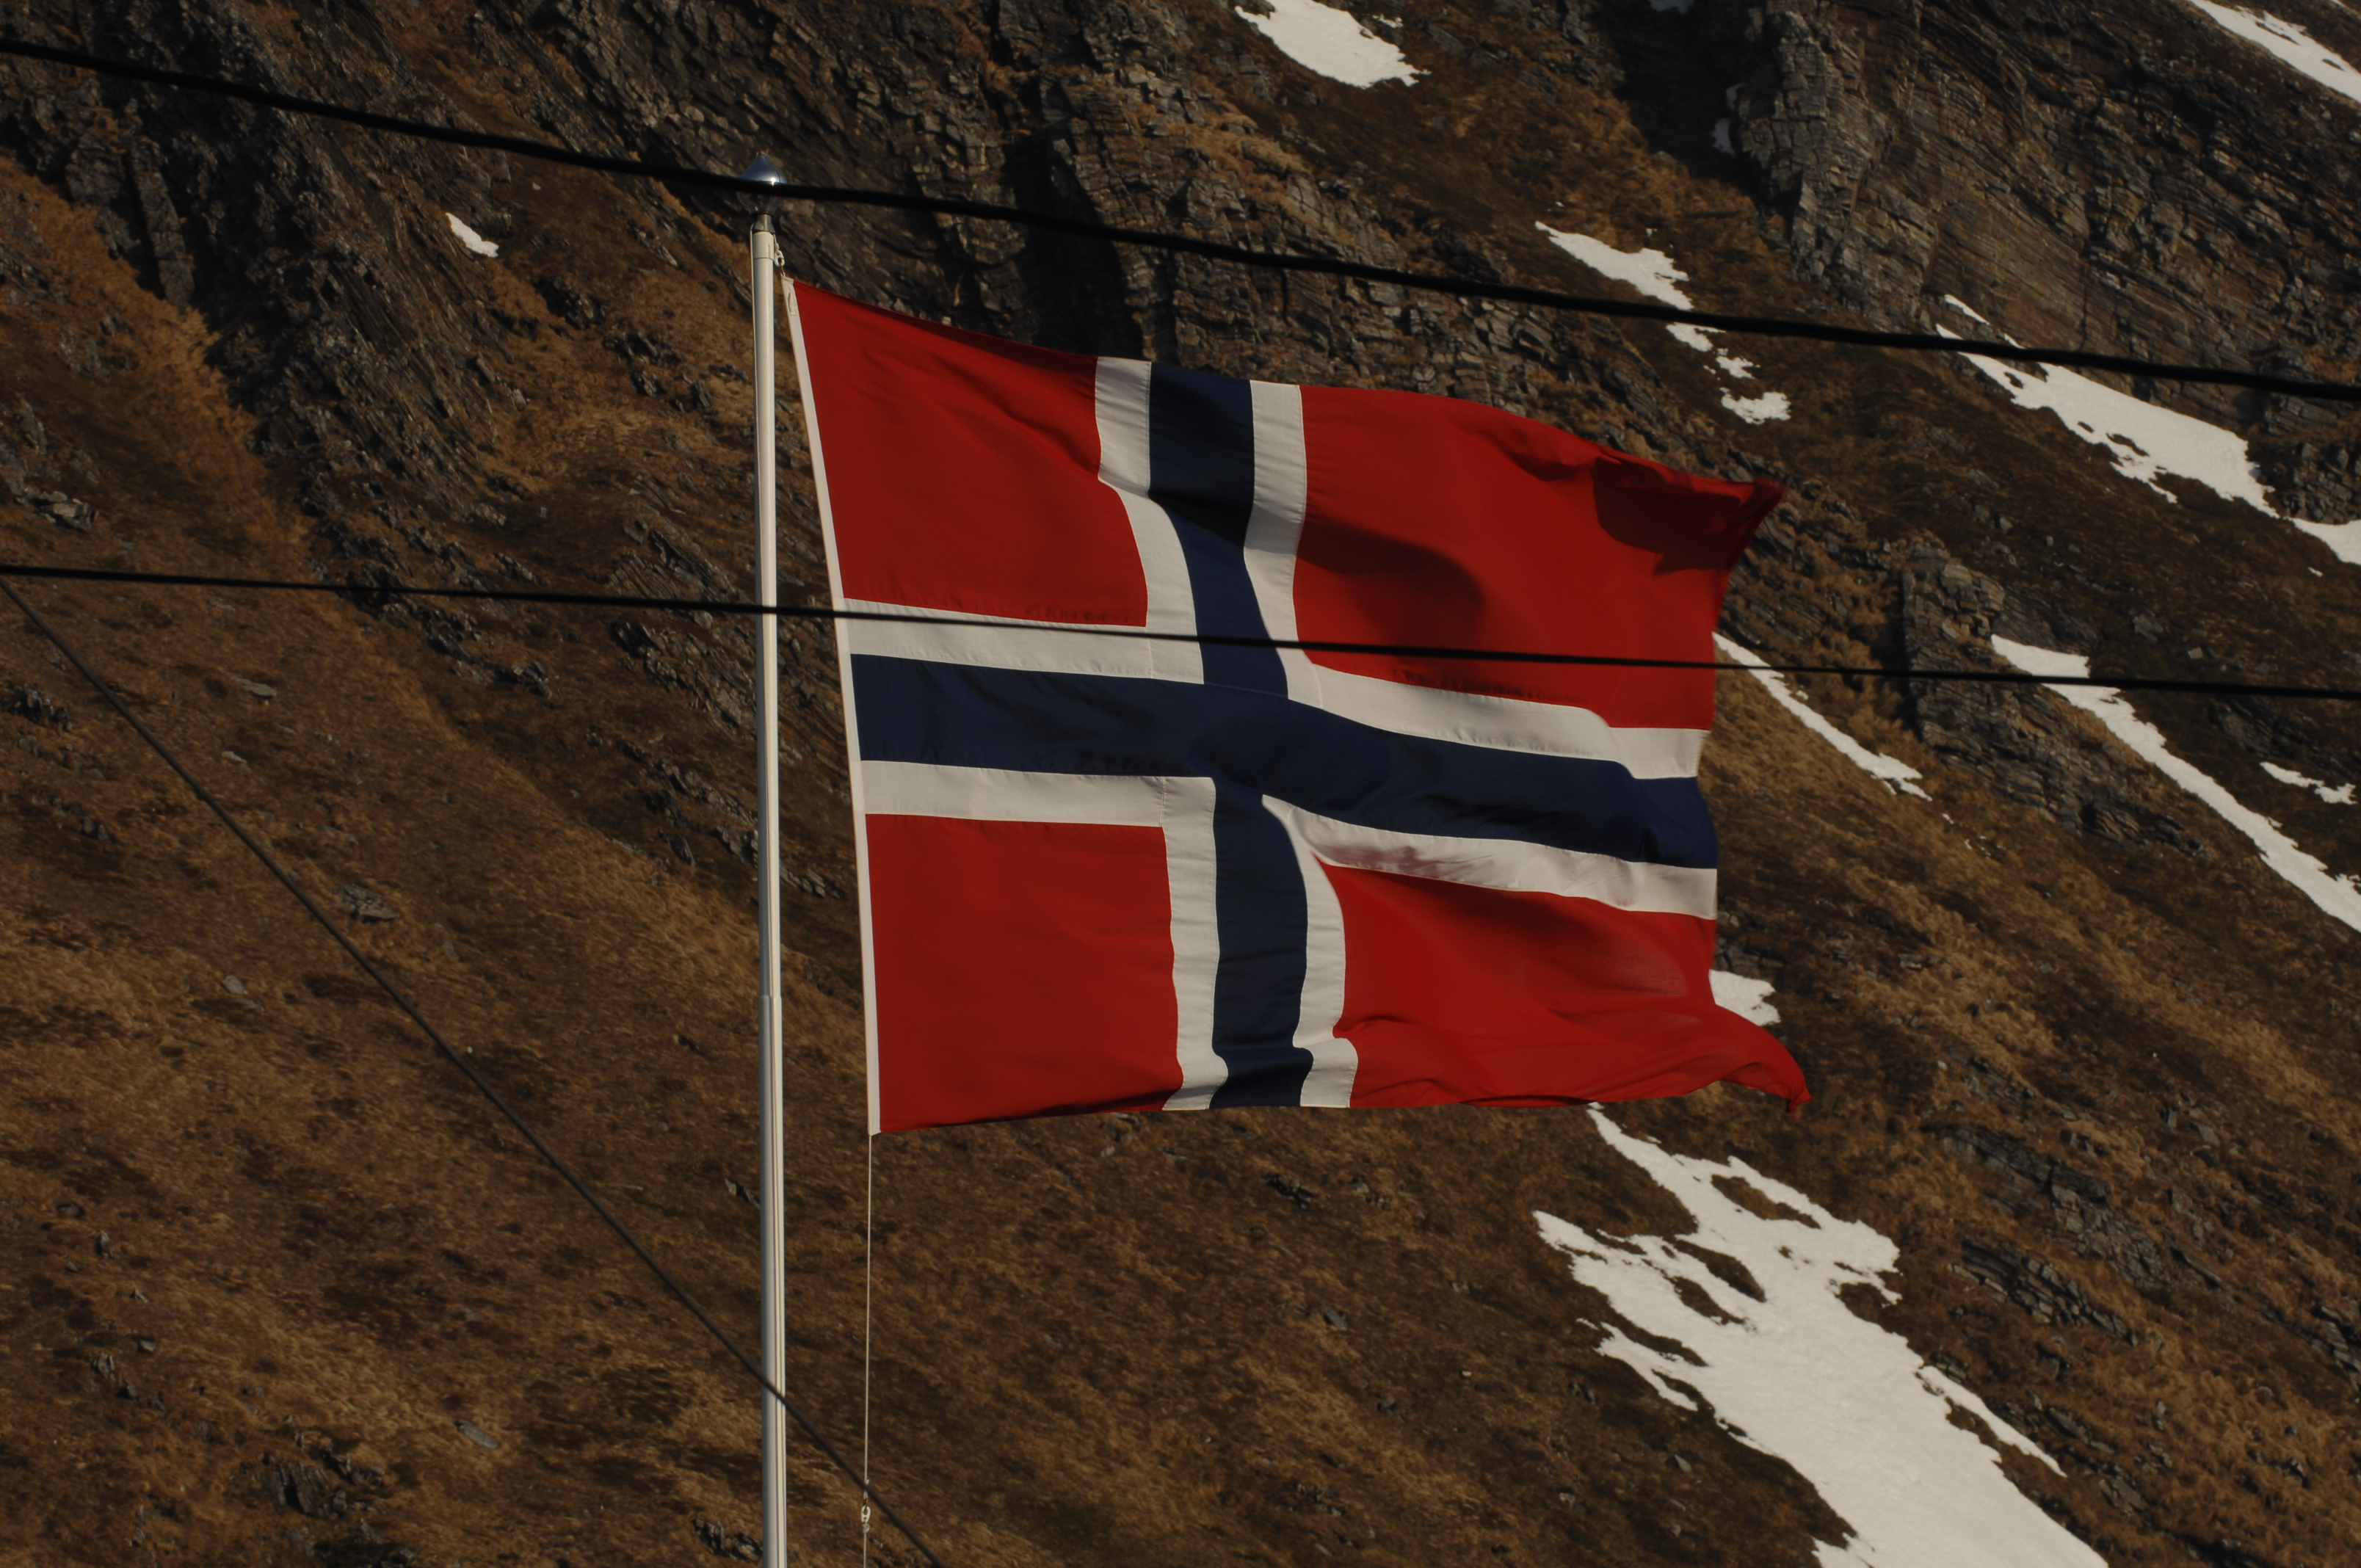 norwegian-flag-snow-norway